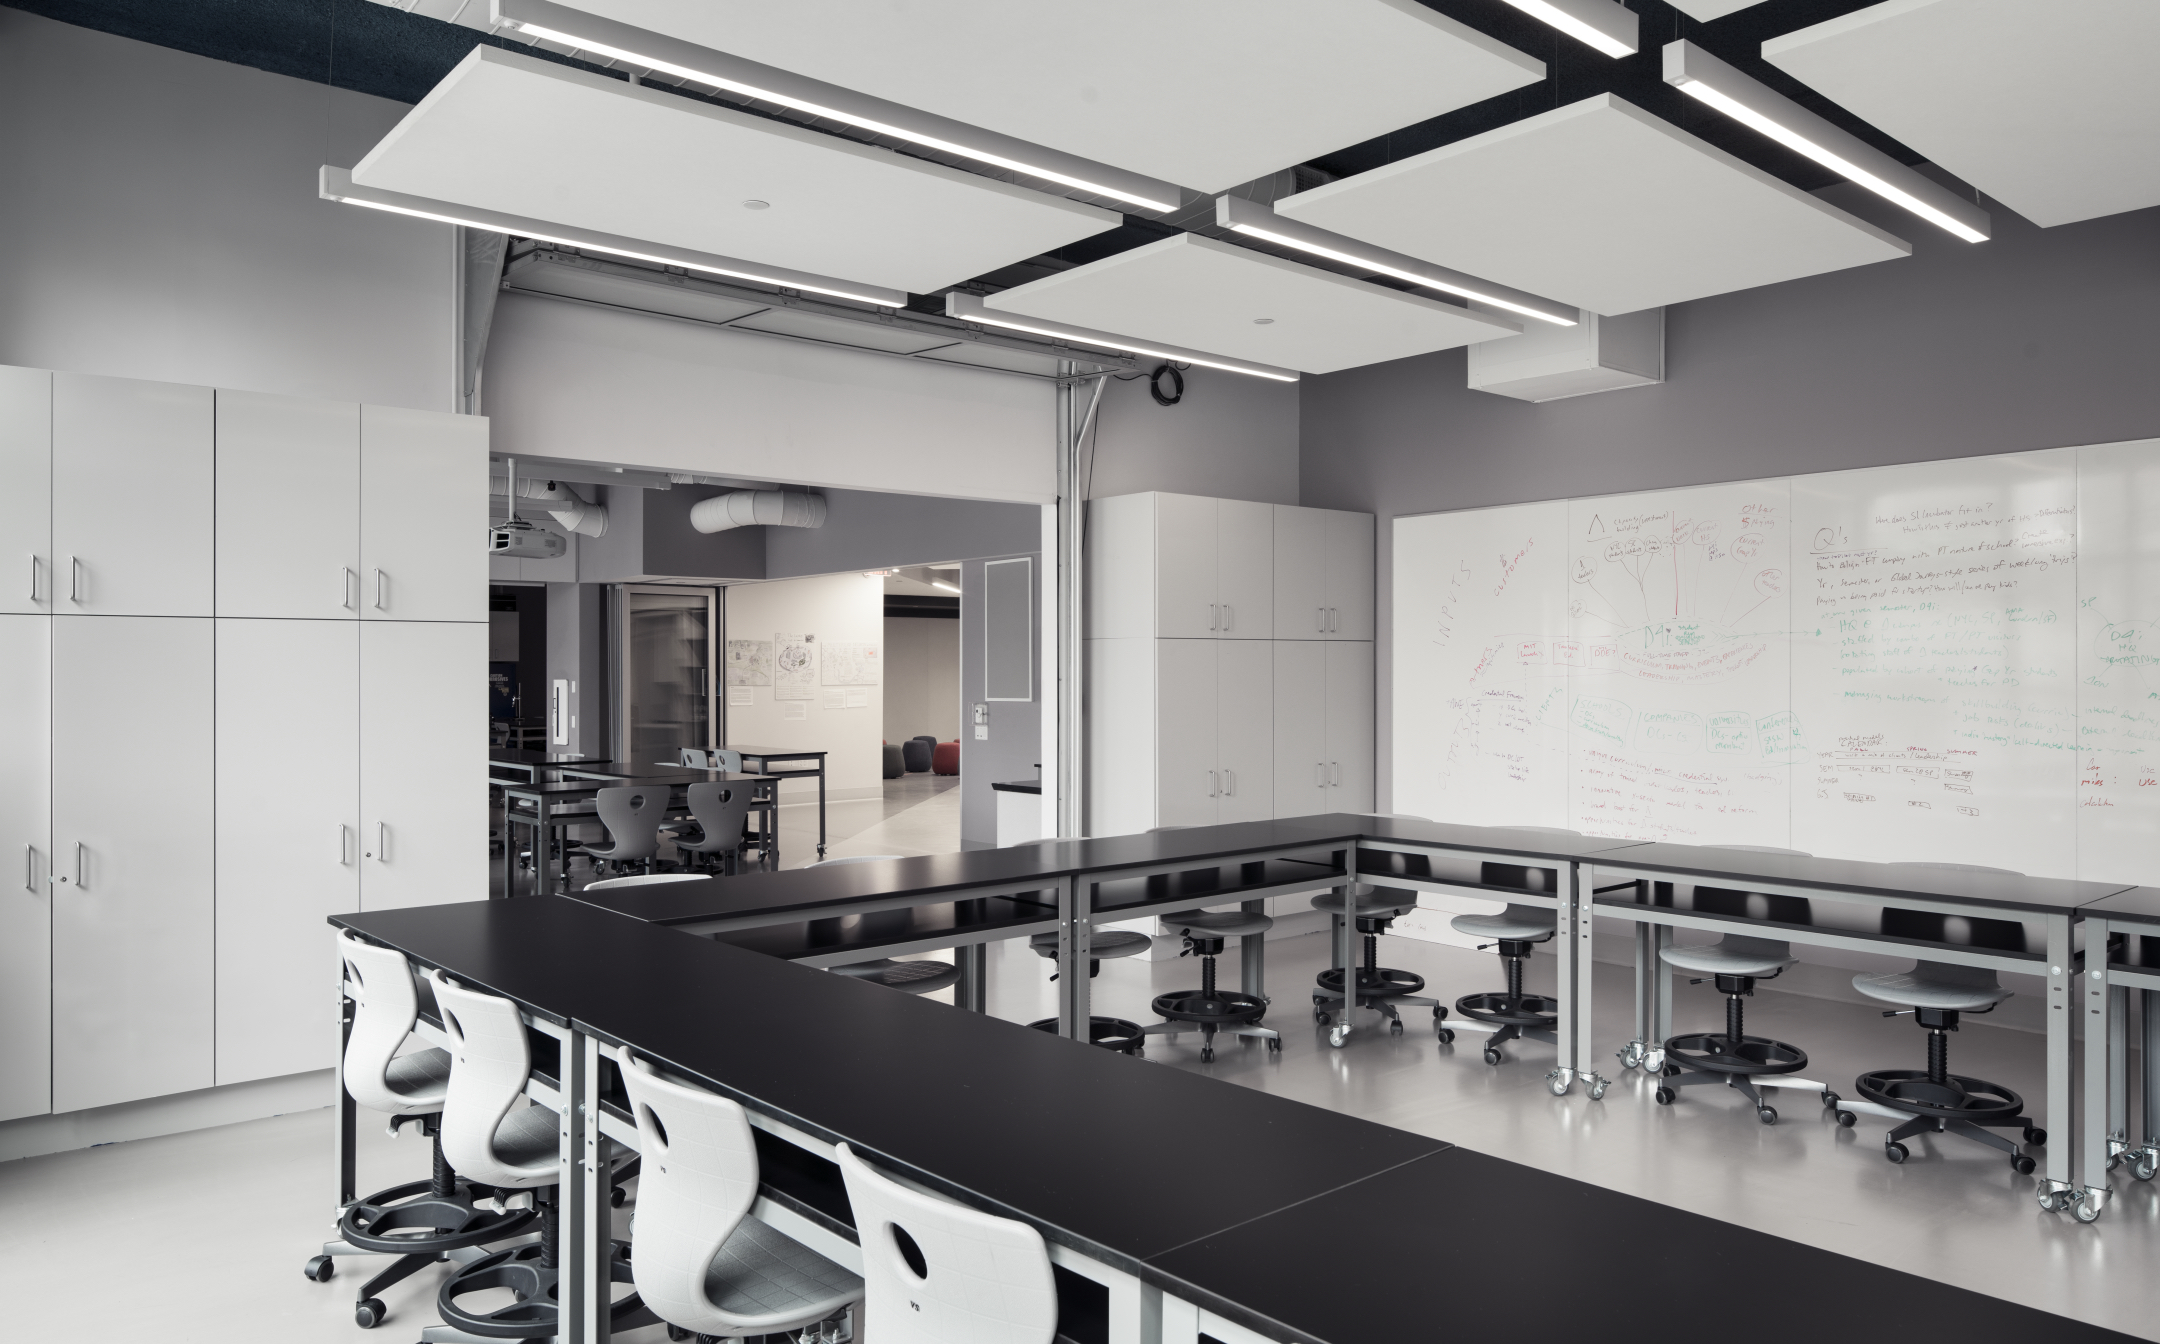 Avenues: New York - Co.Lab Seminar Classroom